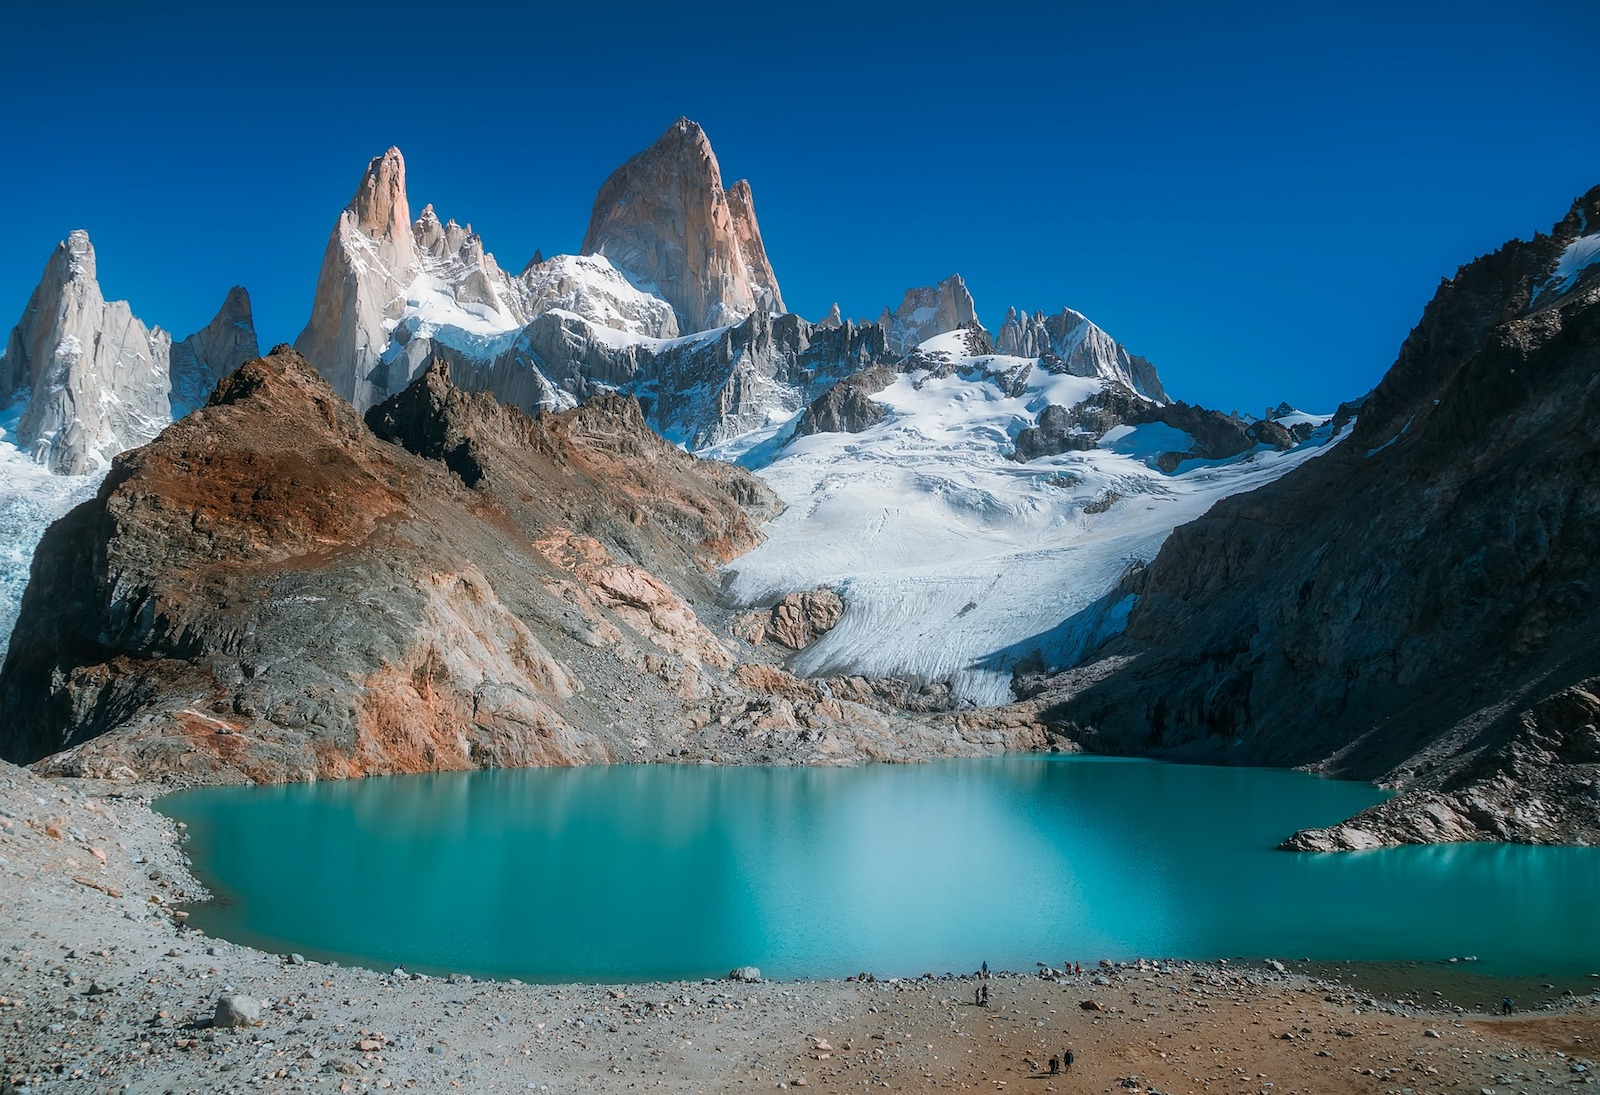 Hiking to the base of Mount Fitz Roy where a shimmering blue lake pans out beneath the granitic spears